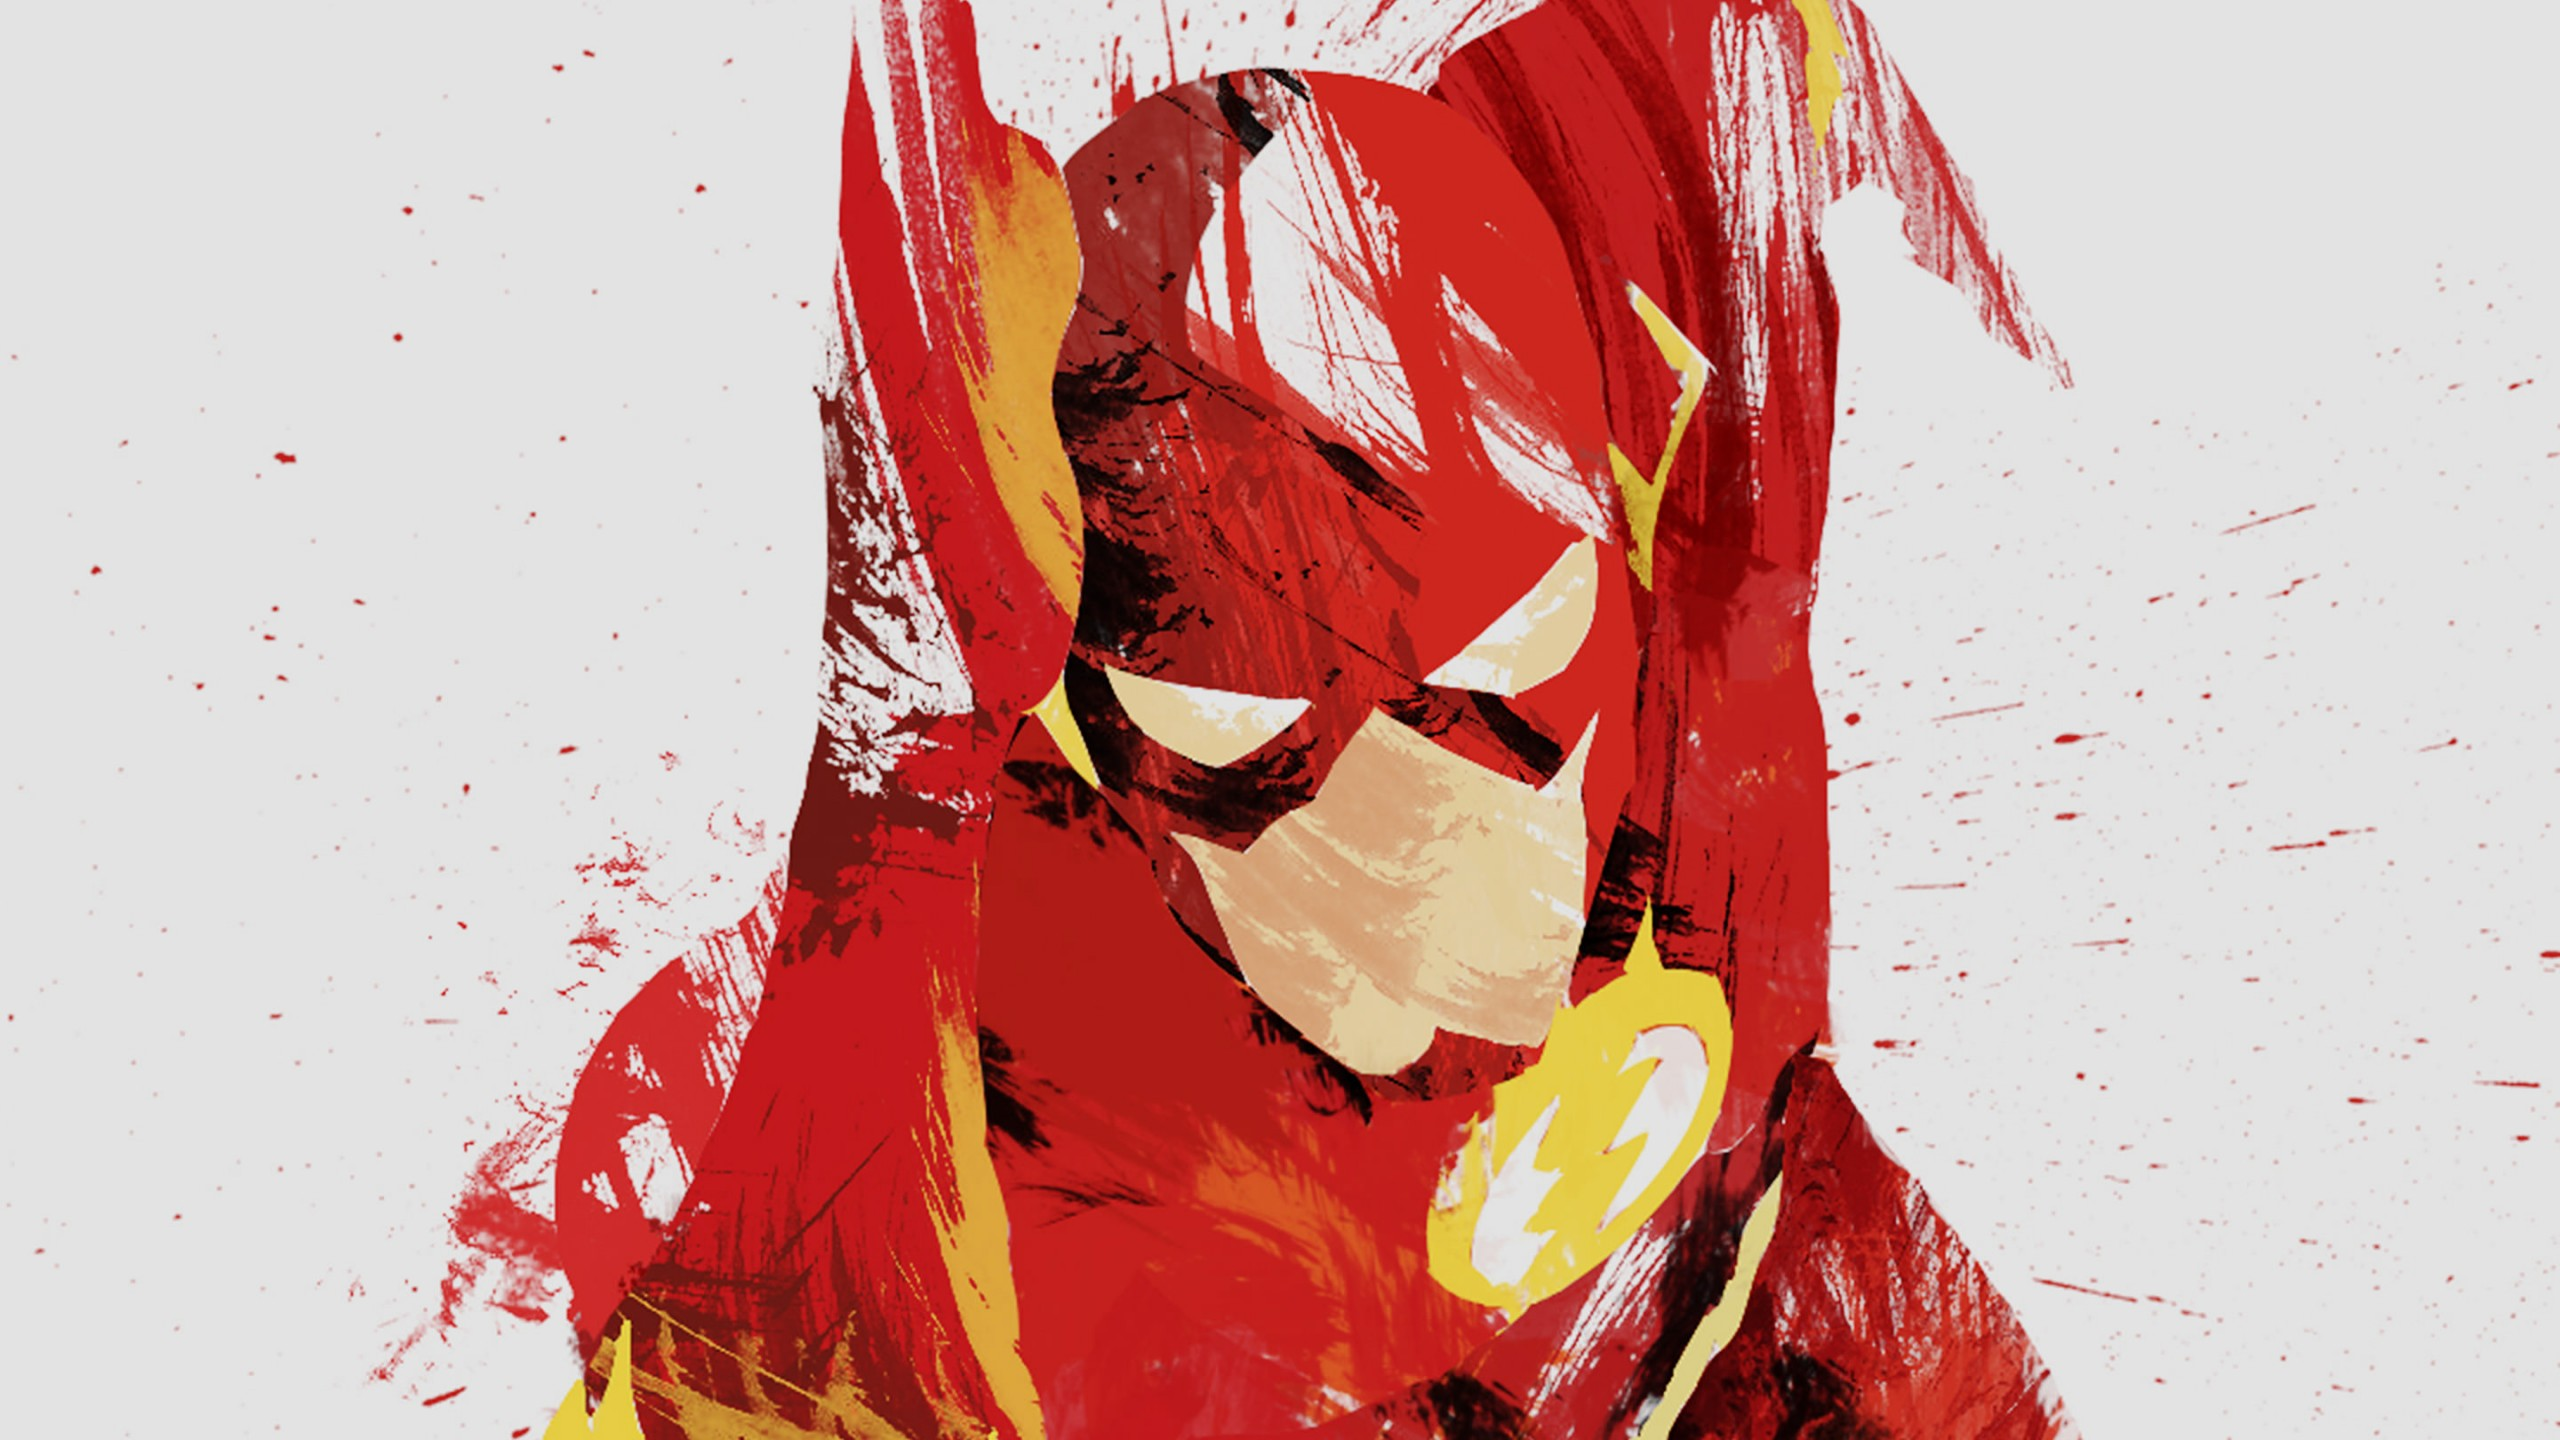 Download The Flash Illustration HD wallpaper for 2560 x 1440 2560x1440